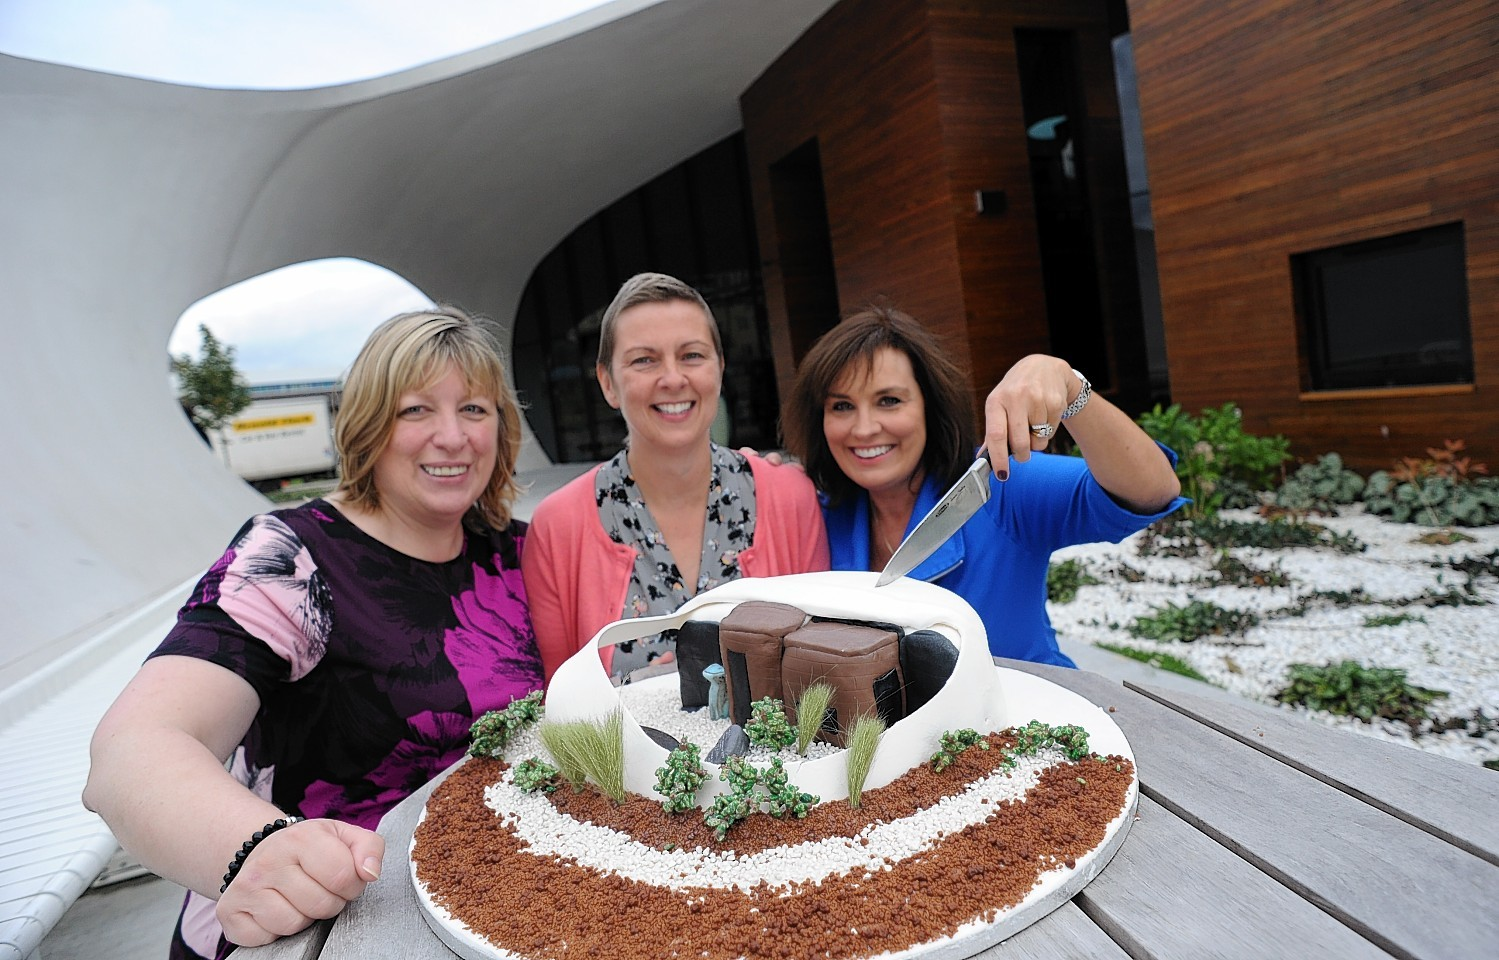 Susan Sutherland, Lyndsey Hope and Patricia Straughen with Mrs Hope's cake